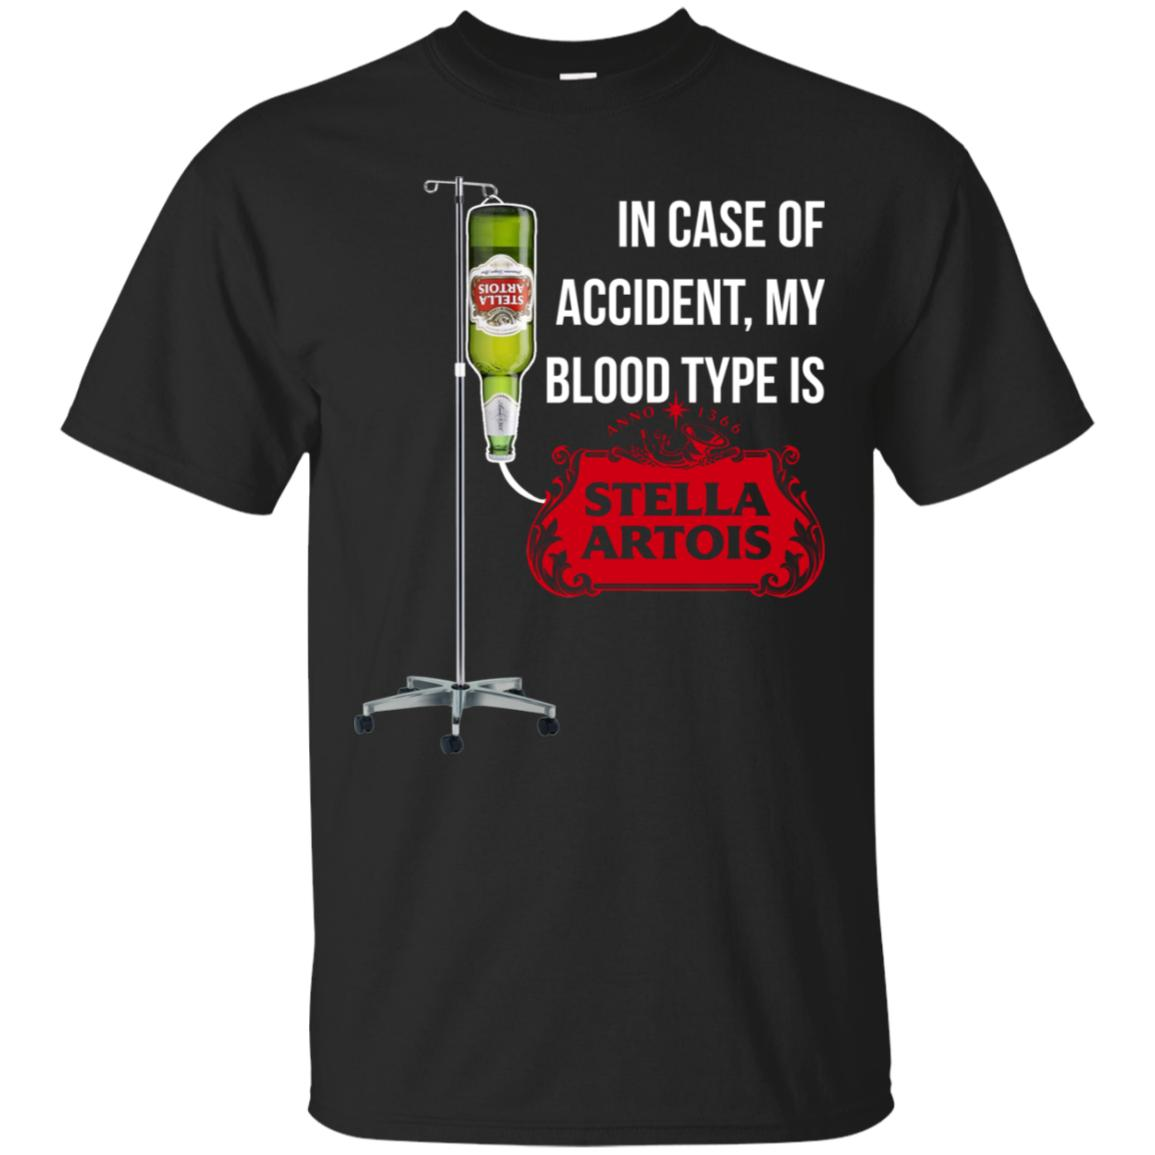 In Case of Accident My Blood Type Is Stella Artois T-Shirt